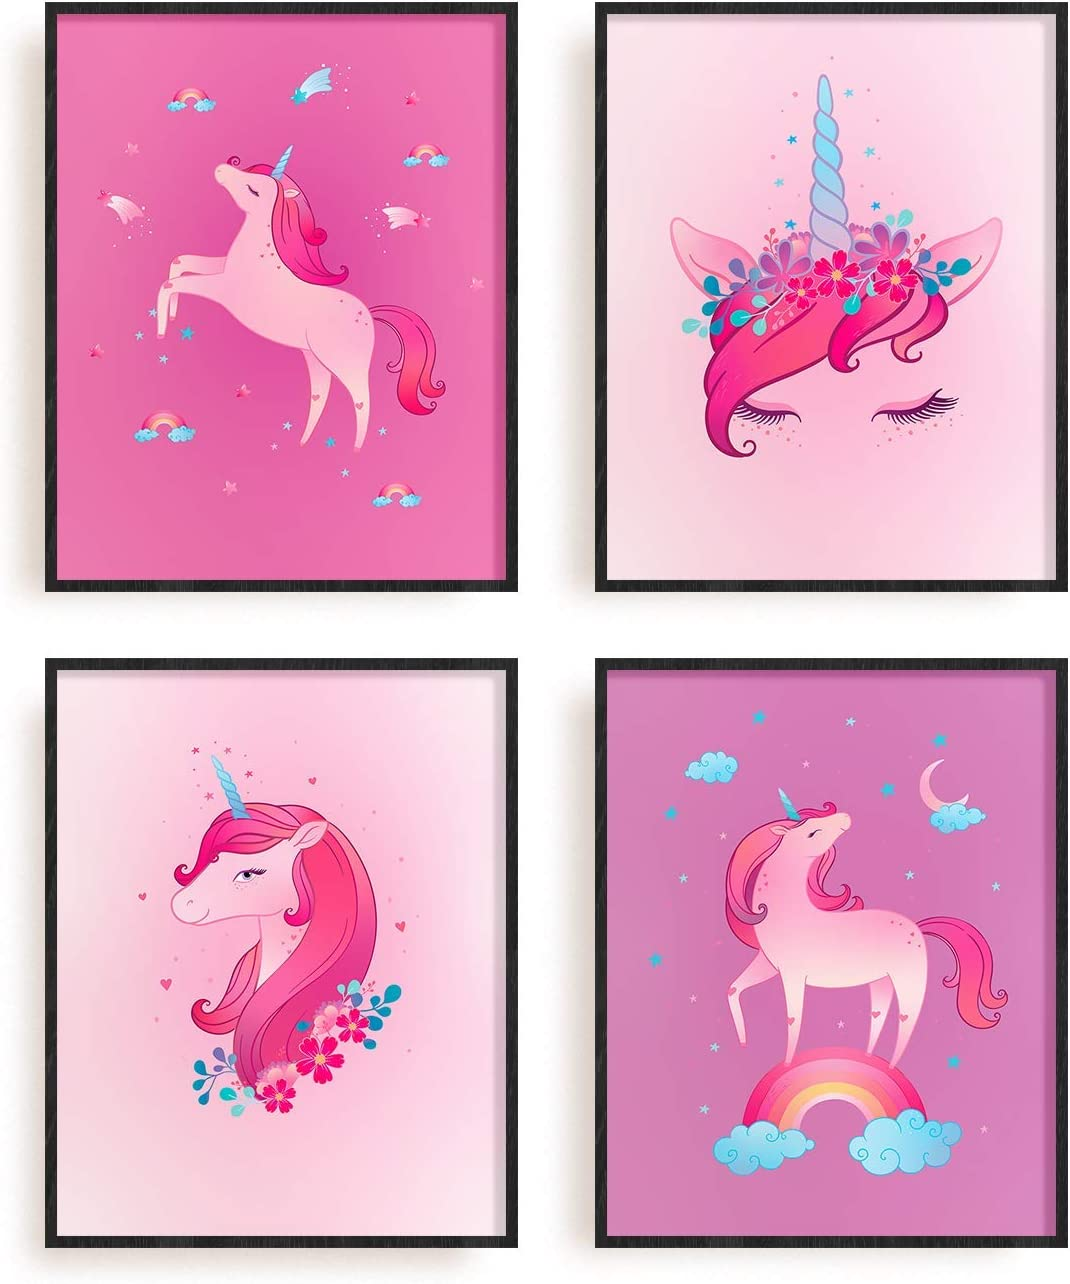 """Unicorn Posters Set of 4 By The Carefree Bee   Unicorn Bedroom Décor   Unicorn Room Decorations for Girls/Kids Bedroom   Nursery Decor for Girls   8"""" x 10""""   Unframed Poster Wall Decoration (Unicorns)"""